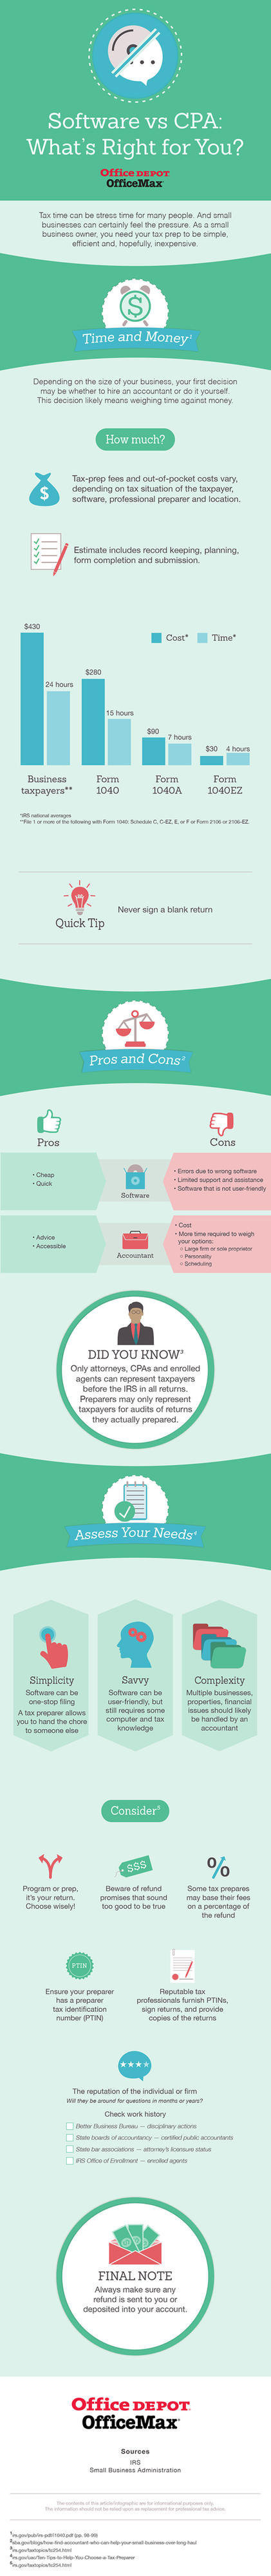 Software vs CPA Whats Right for You